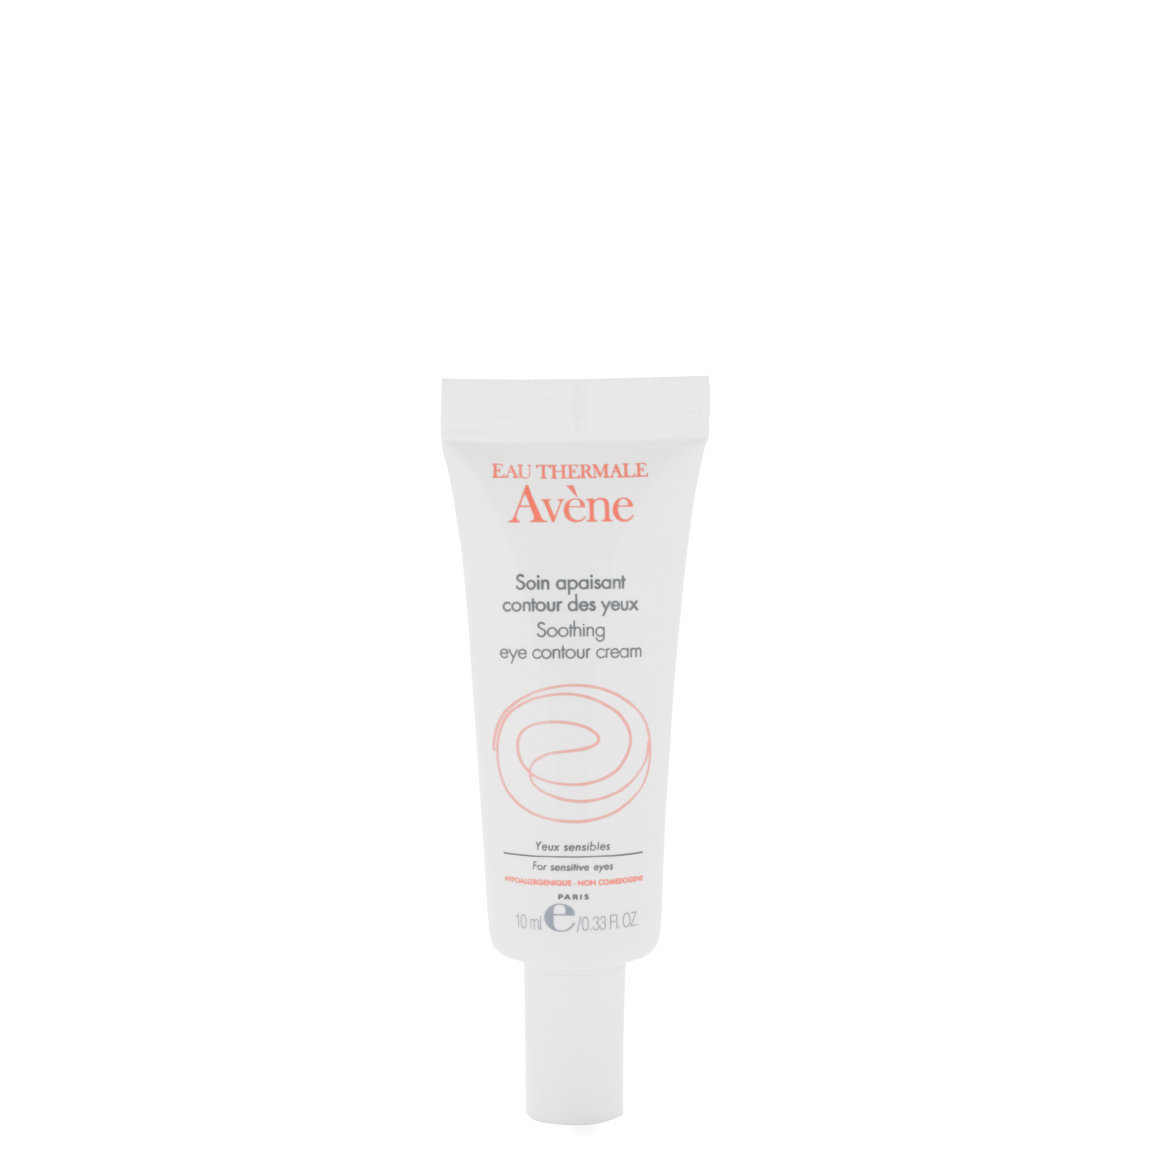 Eau Thermale Avène Soothing Eye Contour Cream product swatch.